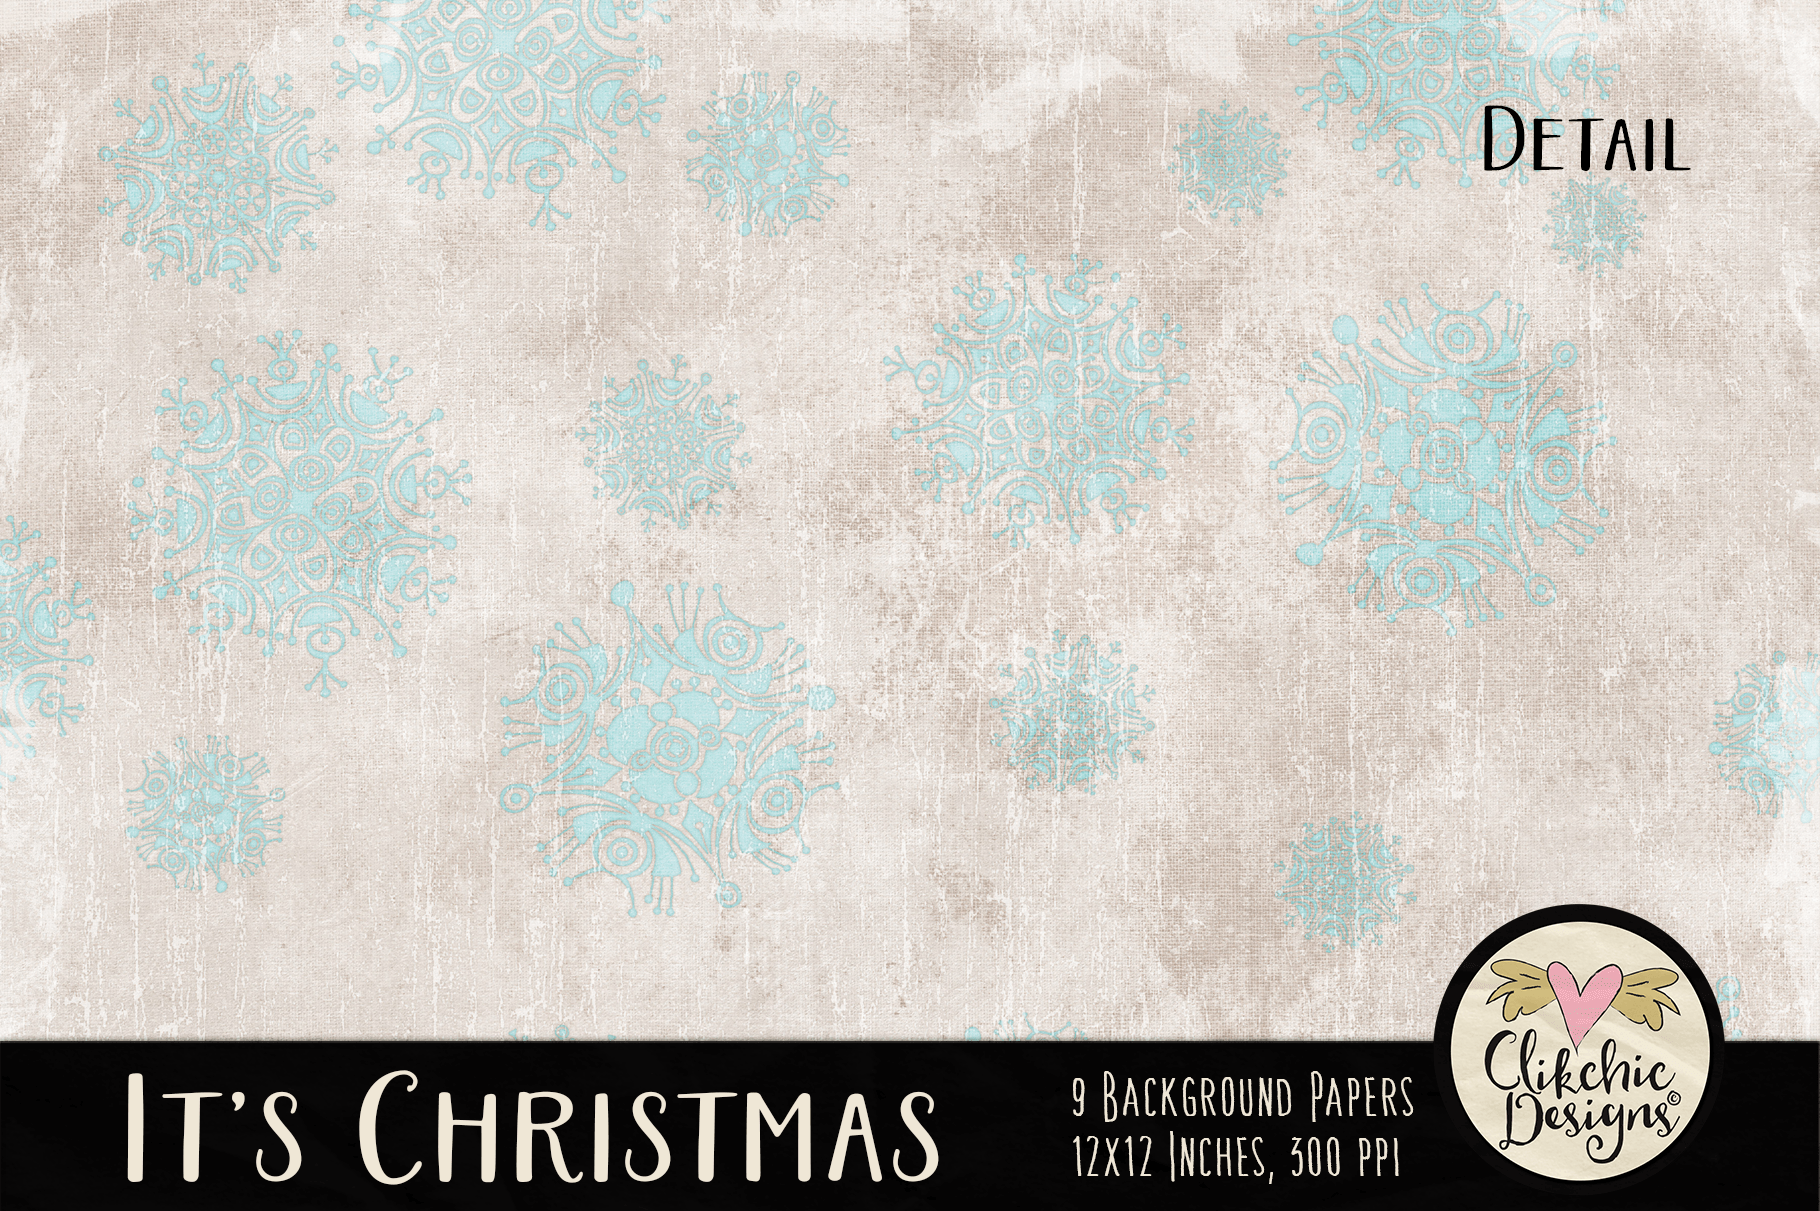 Christmas Backgrounds - Christmas Digital Papers Textures example image 5